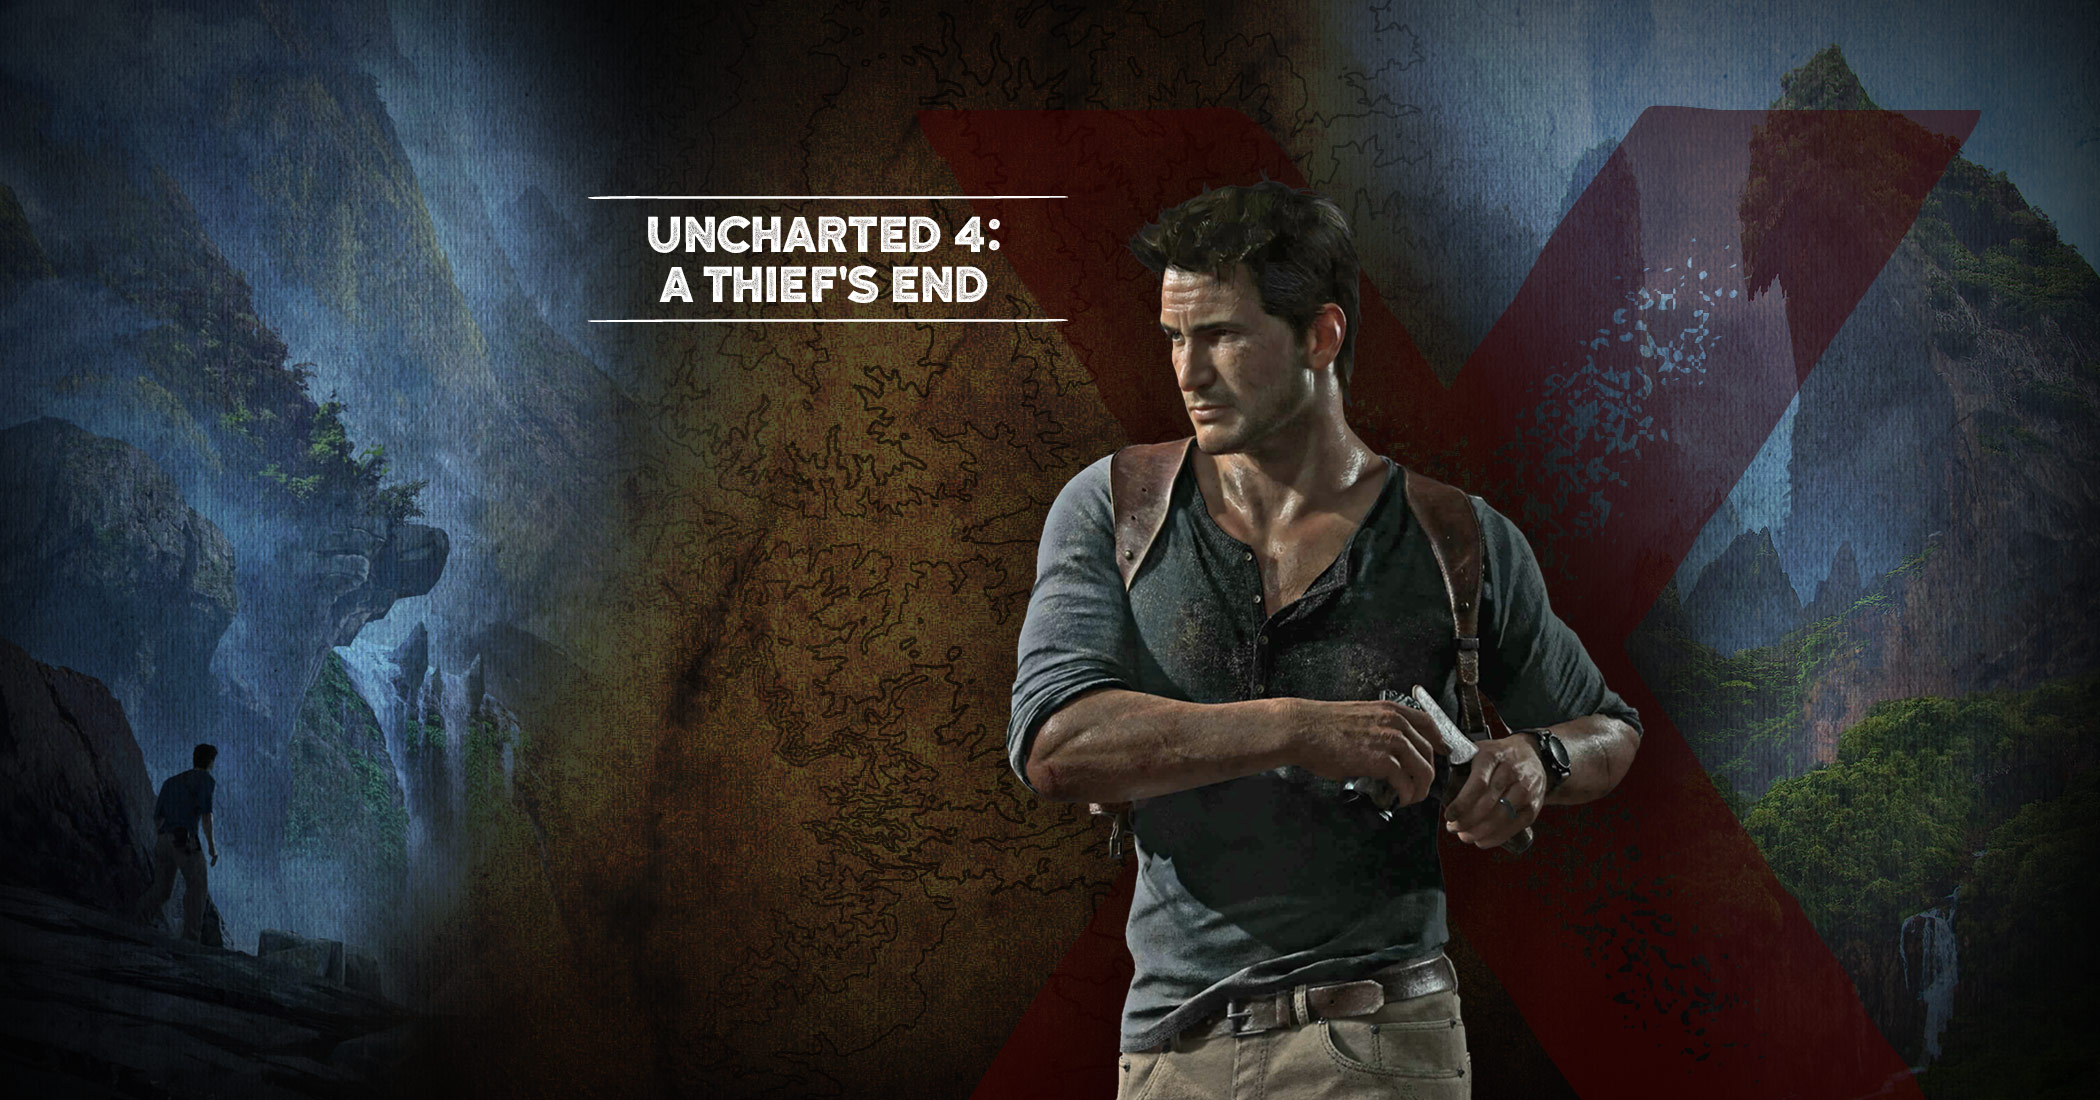 Uncharted 4 Wallpapers High Resolution and Quality Download